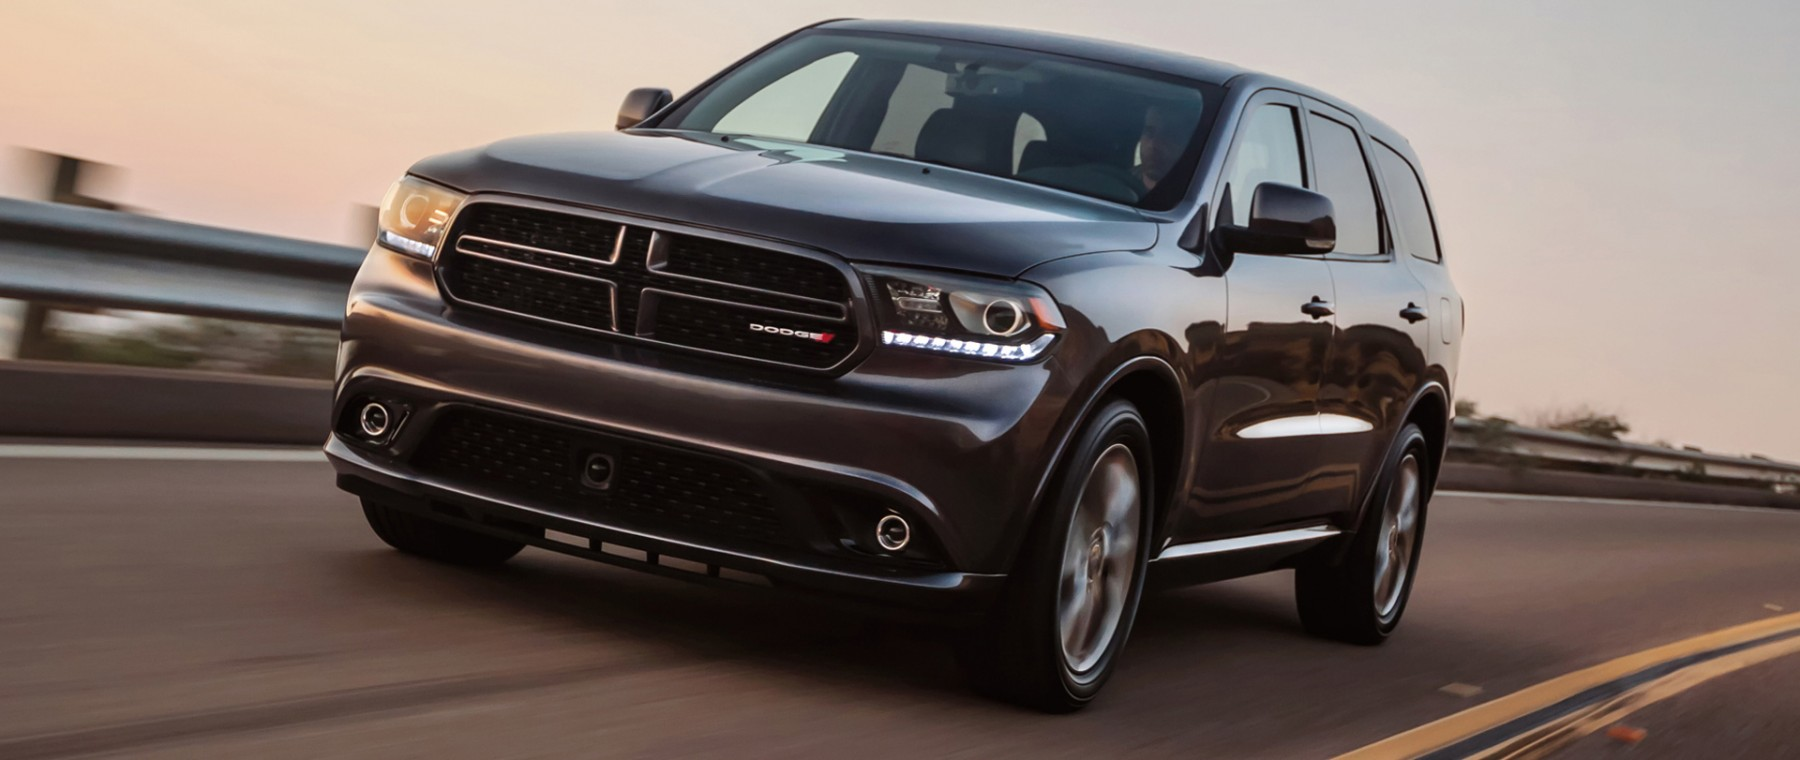 Chrysler Dodge Jeep Ram Lease Deals Ny Nj 2018 Dodge Reviews